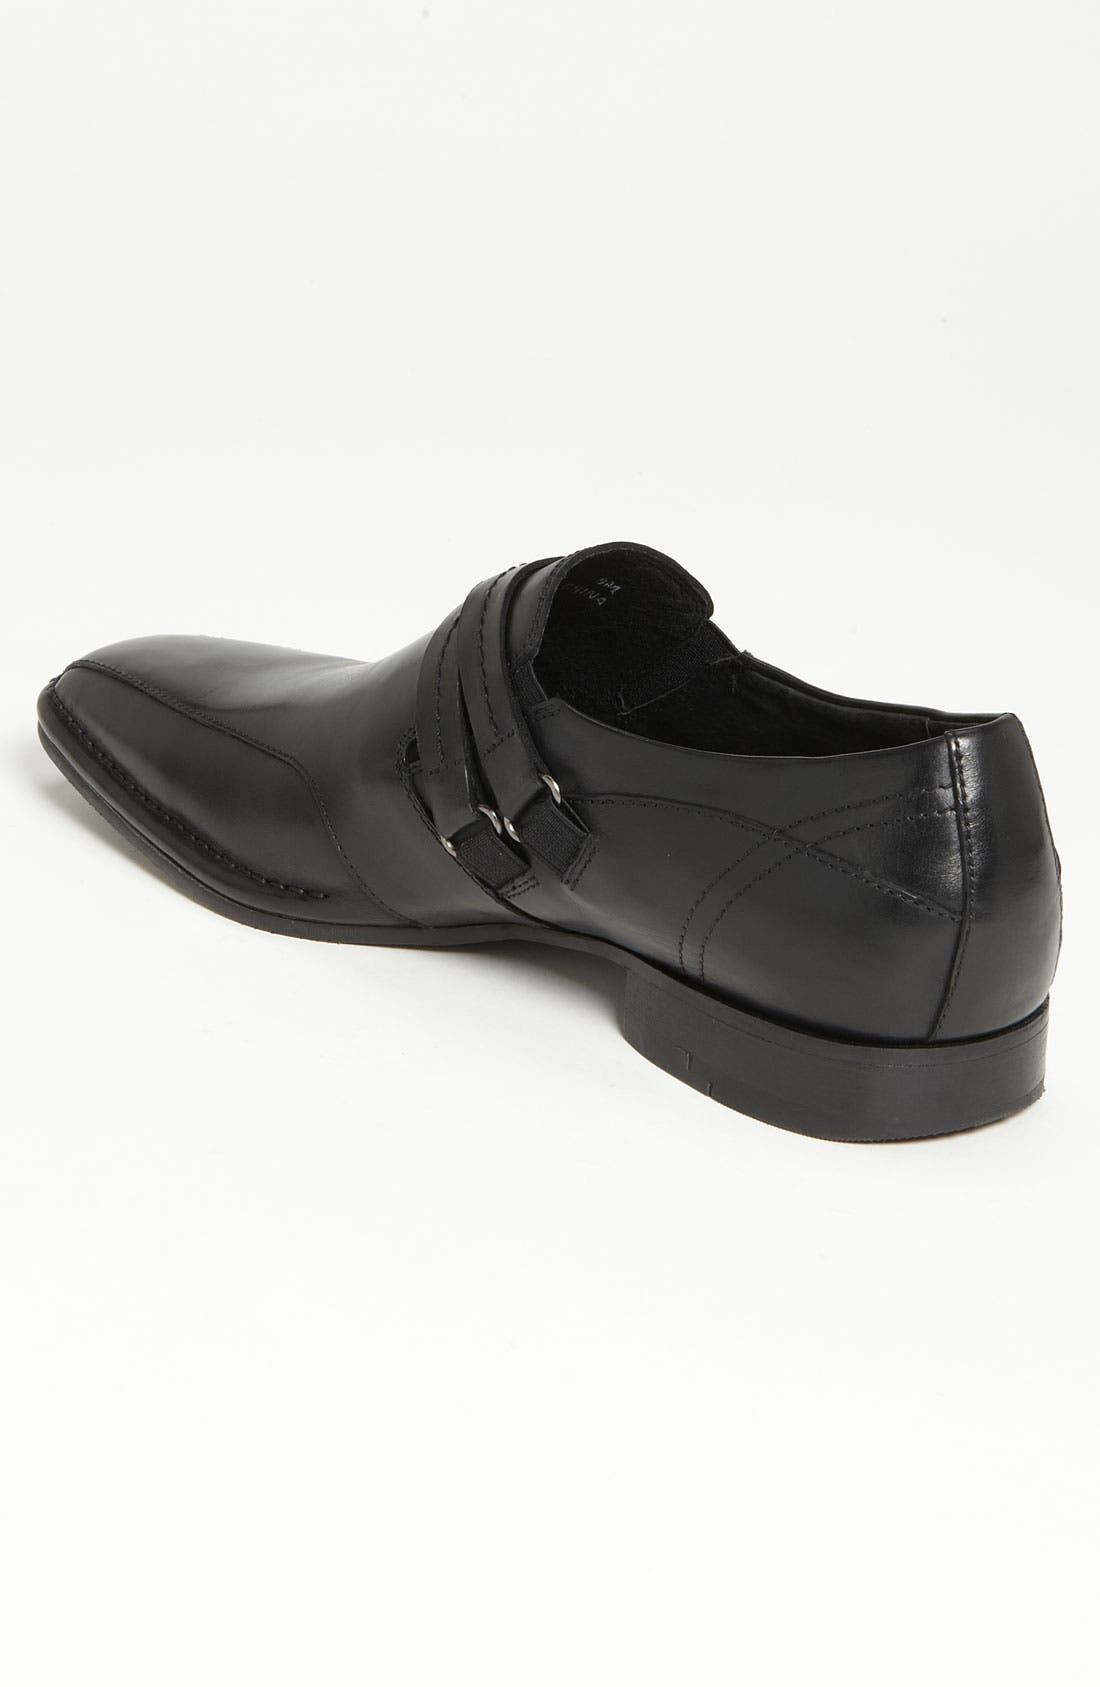 Alternate Image 2  - Kenneth Cole New York 'Way Out There' Monk Strap Loafer (Online Exclusive)